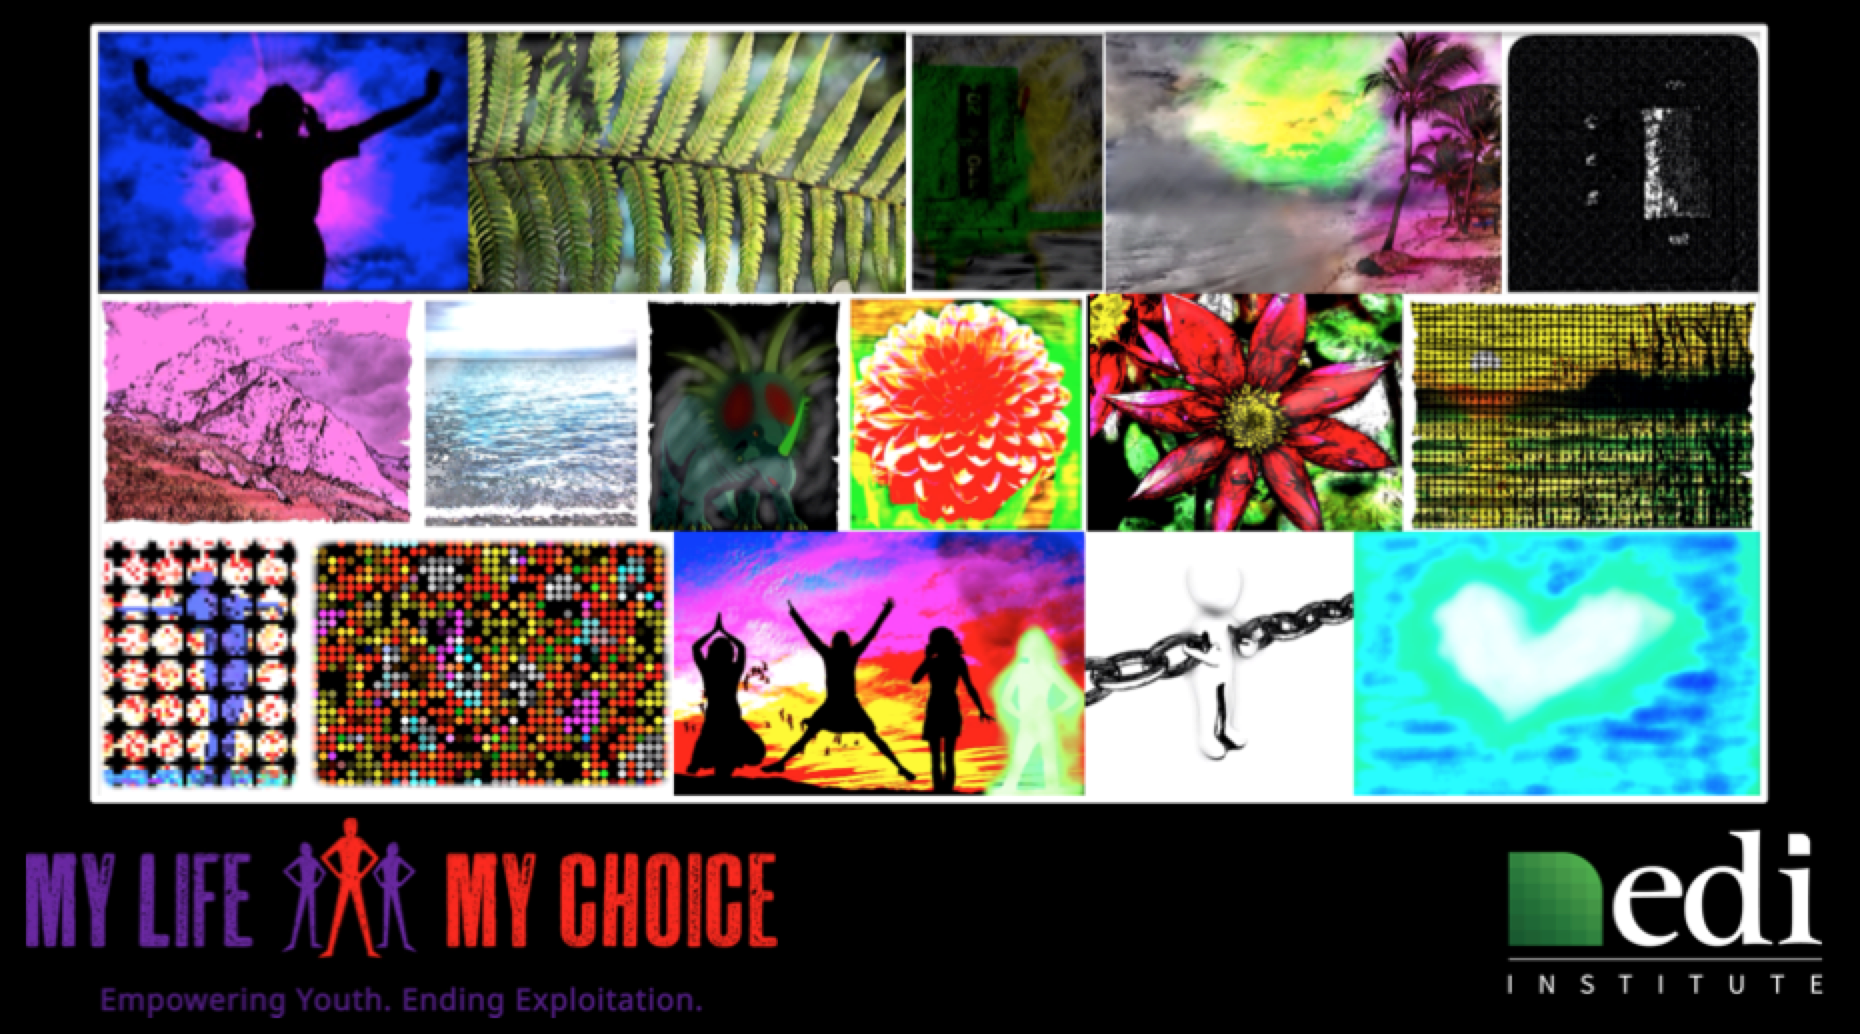 EDI Blog: EDI and My Life My Choice